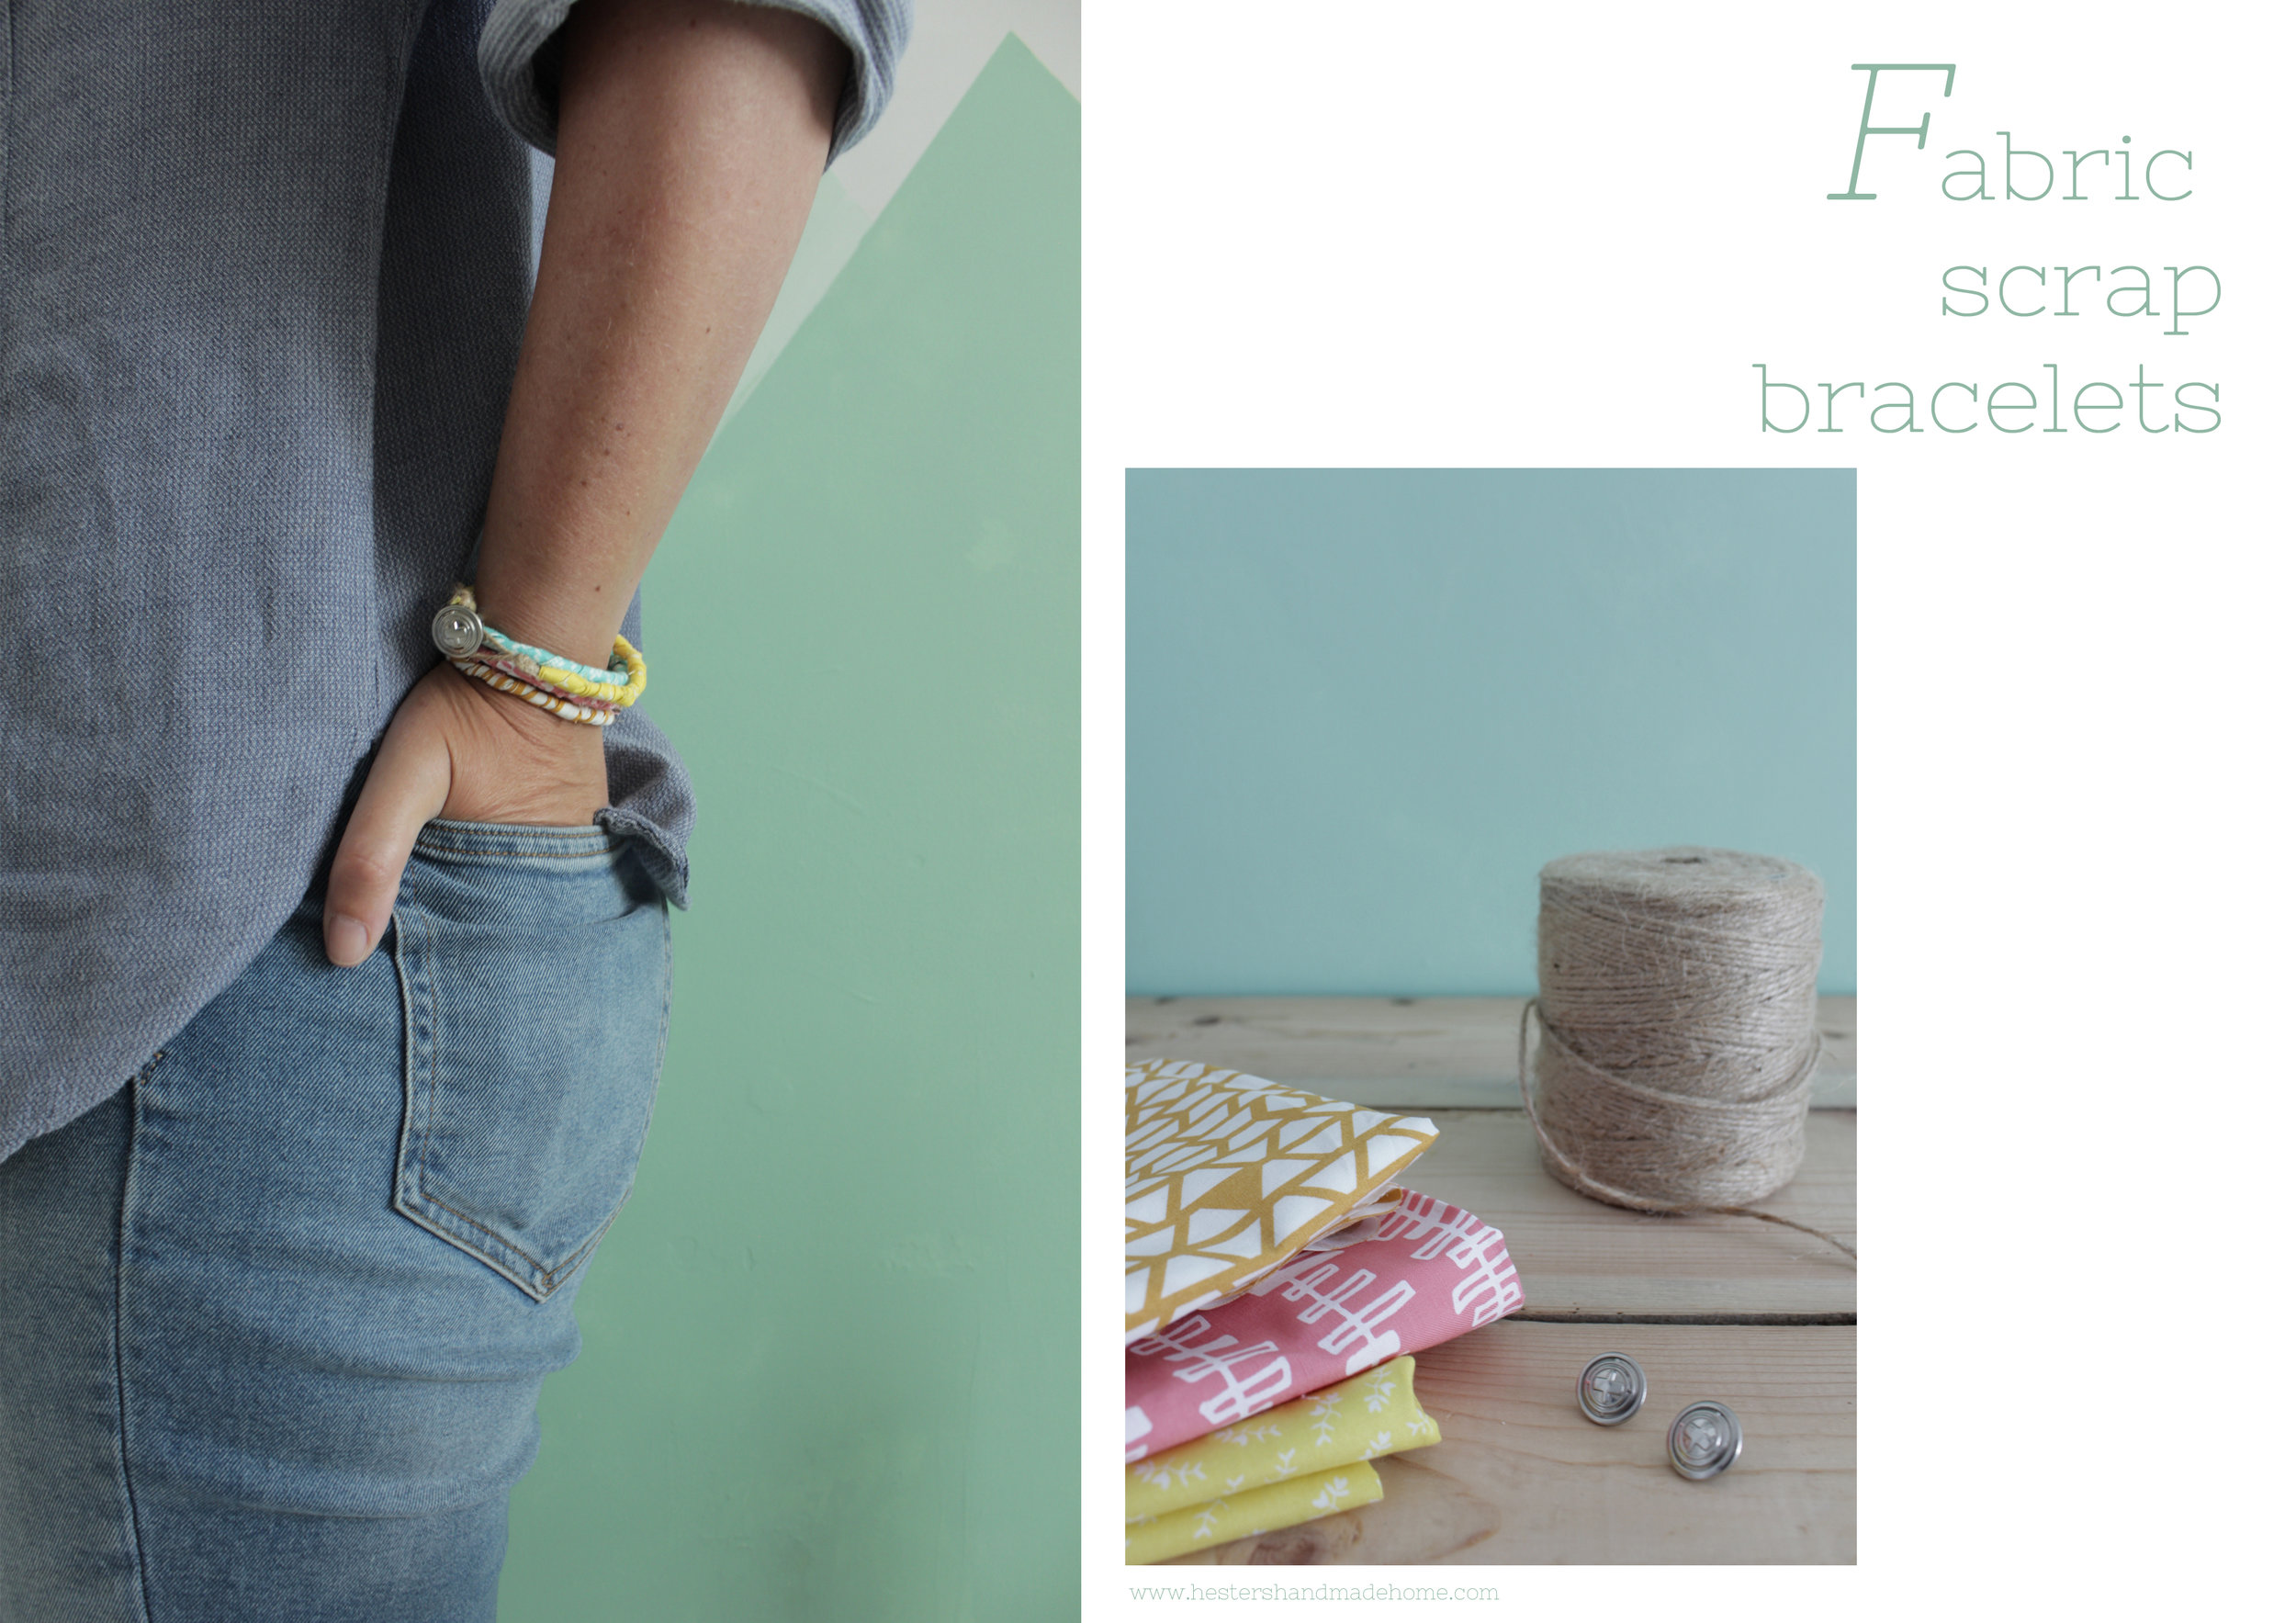 Make bracelets from fabric scraps by www.hestershandmadehome.com